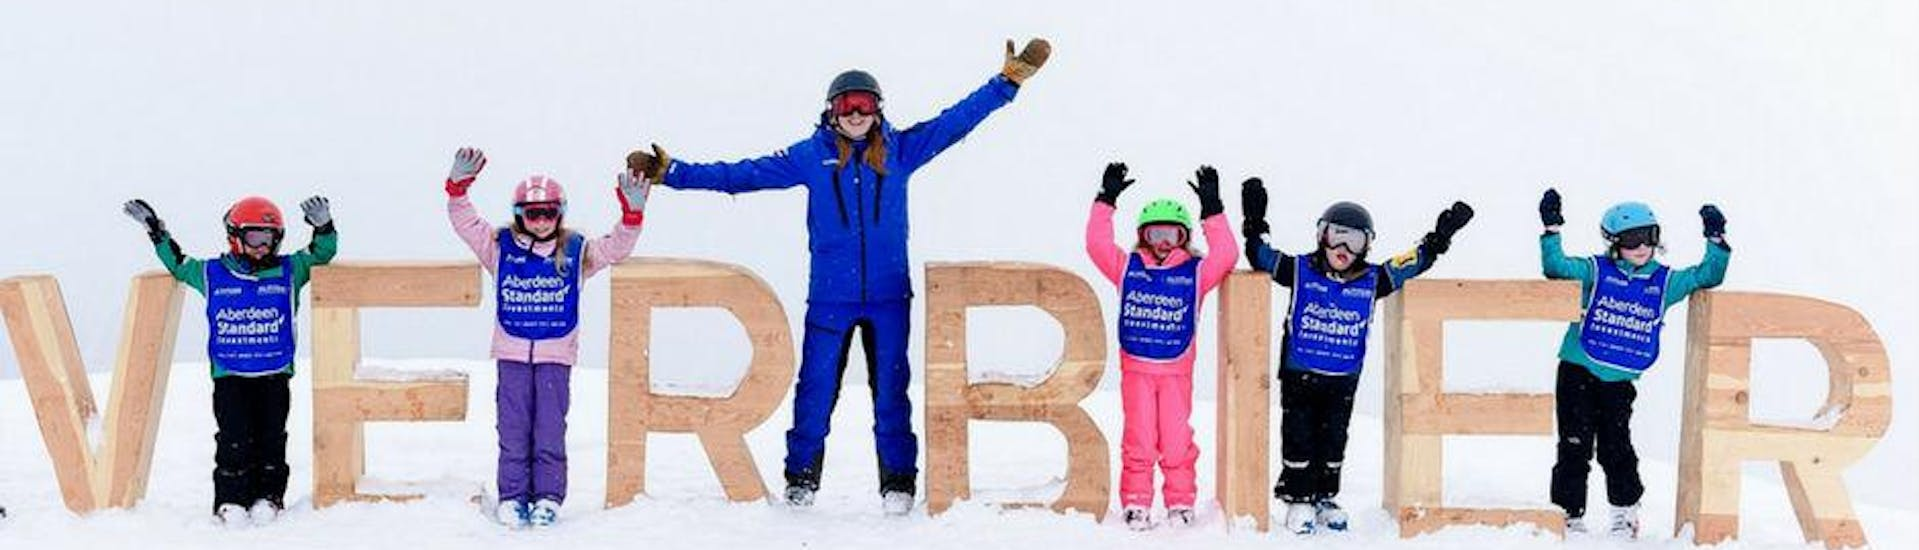 Kids Ski Lessons (6-15 y.) for All Levels